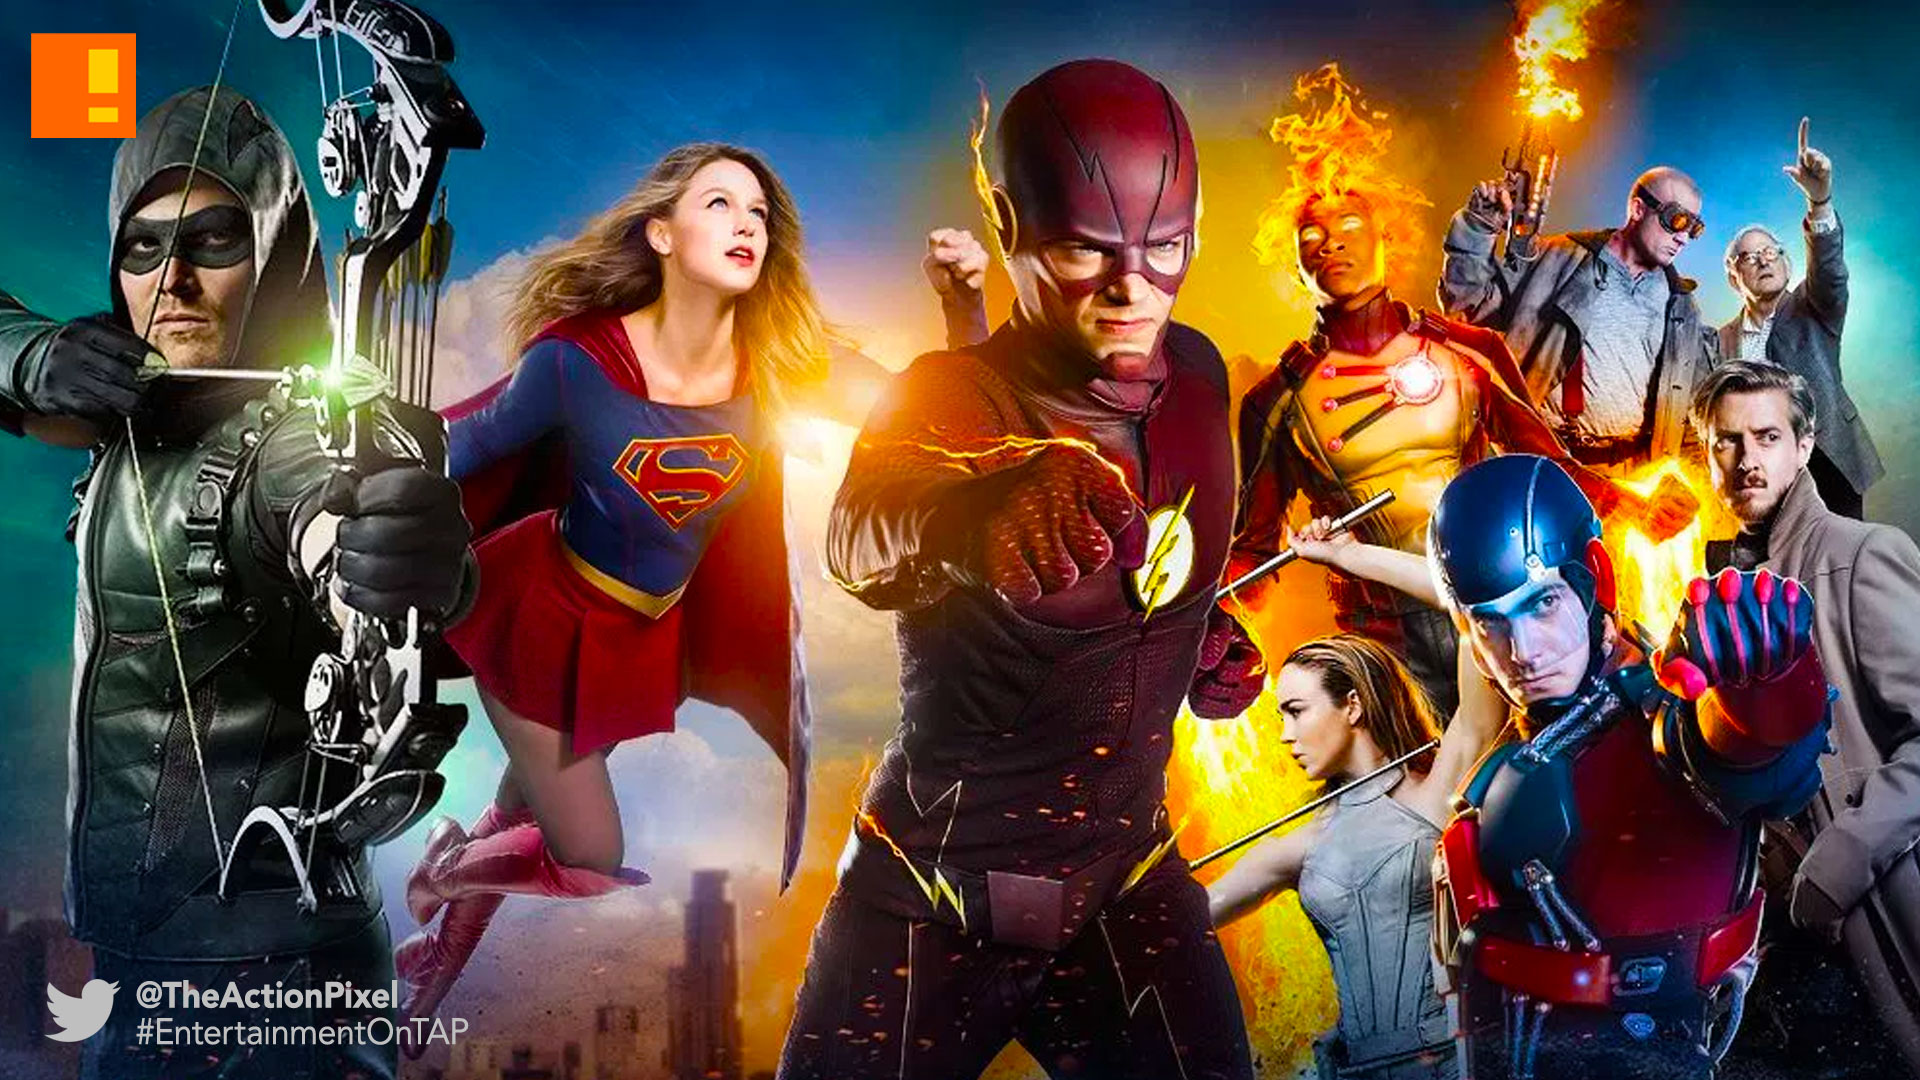 cw network, dc comics, supergirl, the flash, arrow, legends of tomorrow, entertainment on tap, the action pixel